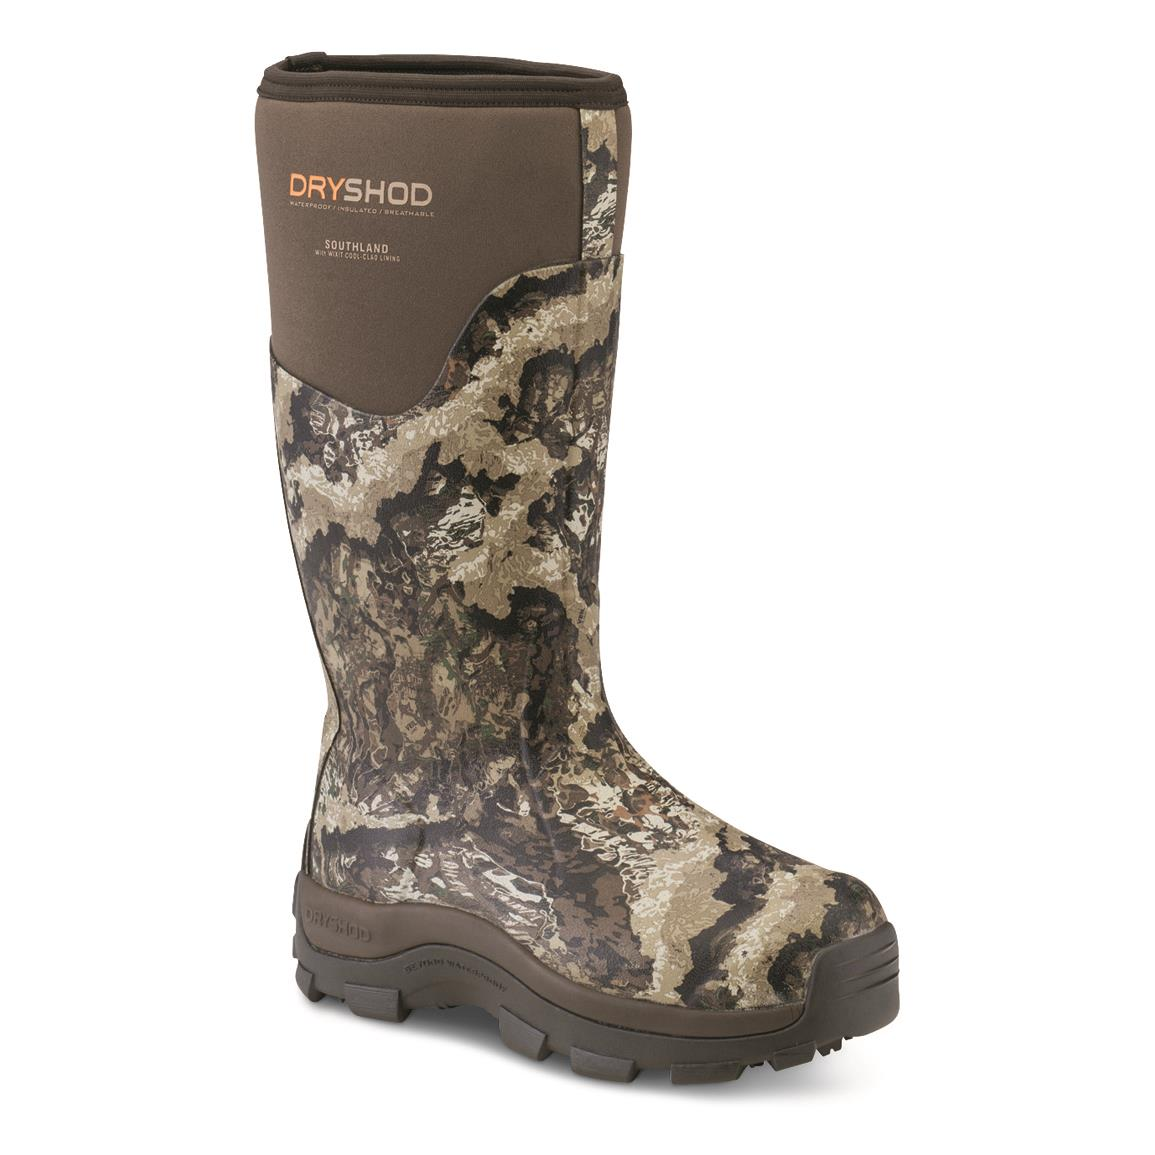 Dryshod Men's Southland Cool Rubber Hunting Boots, Veil Whitetail/khaki